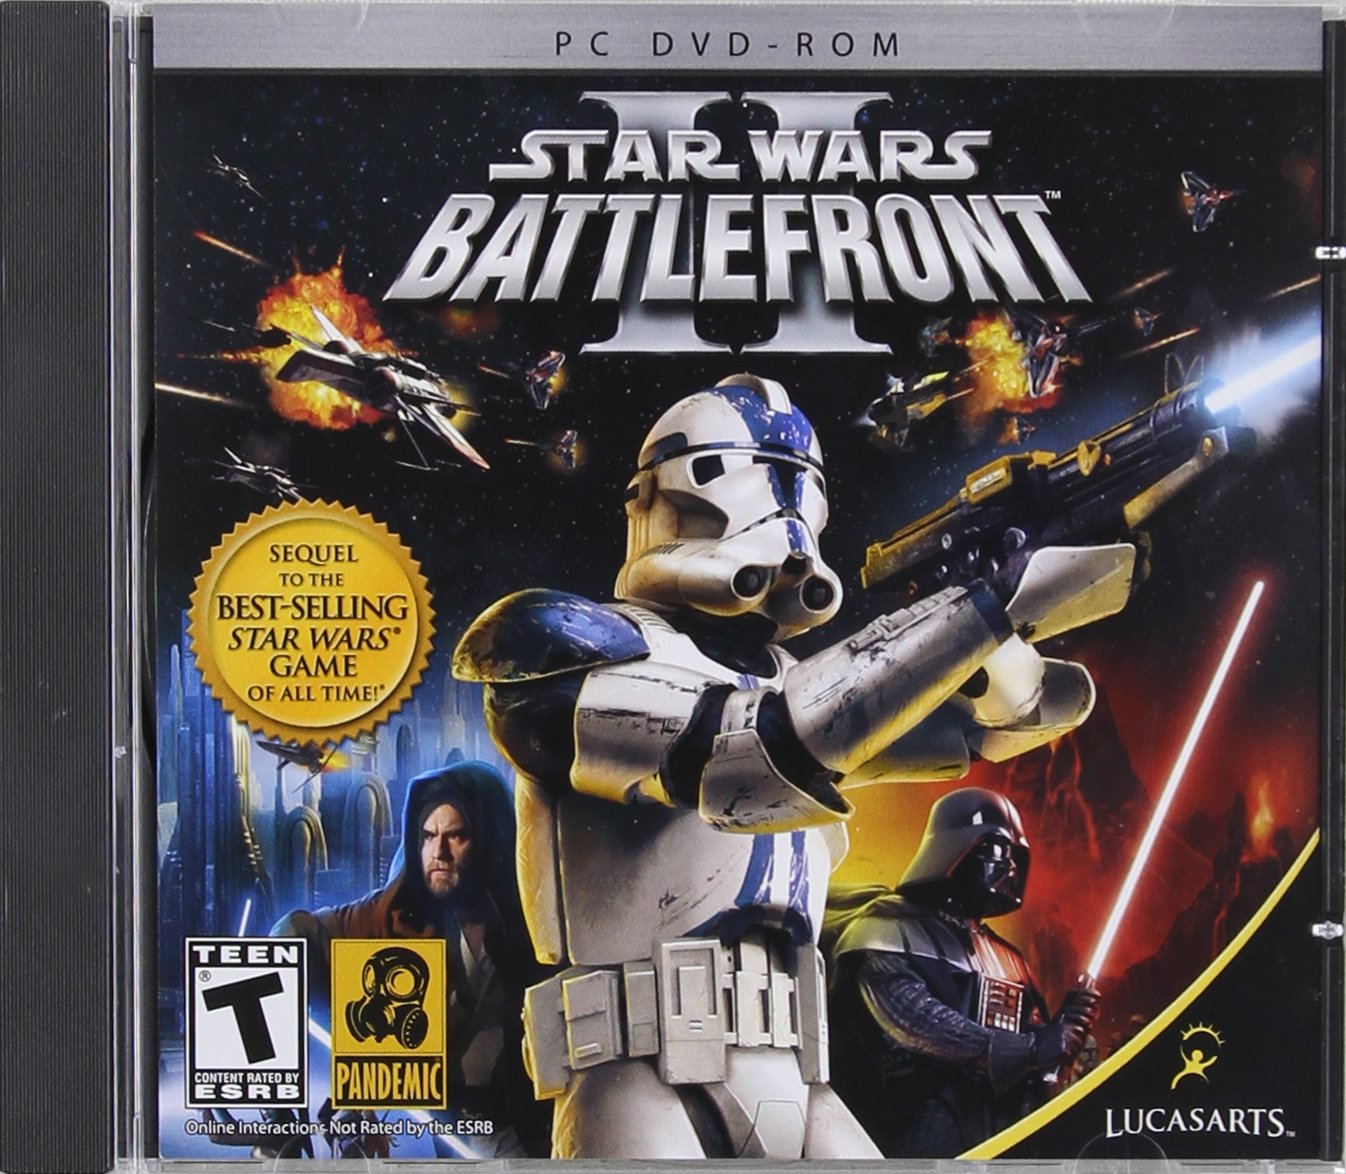 Star Wars Battlefront available for PS4, Xbox One & PC